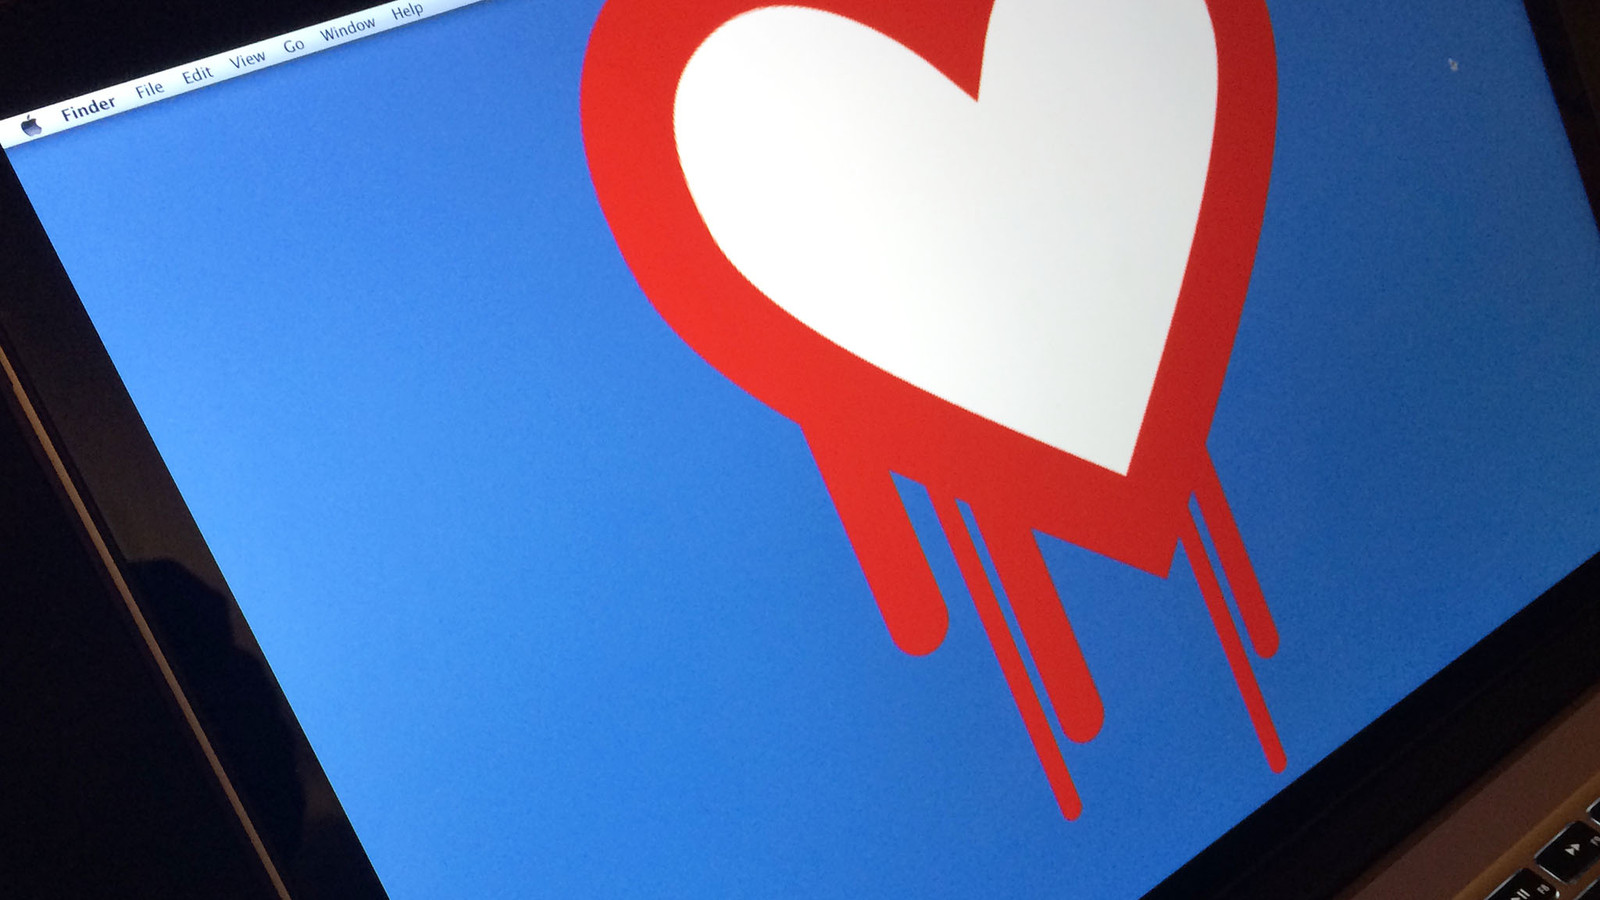 Heartbleed, the new OpenSSL hack: How does it affect OS X and iOS?